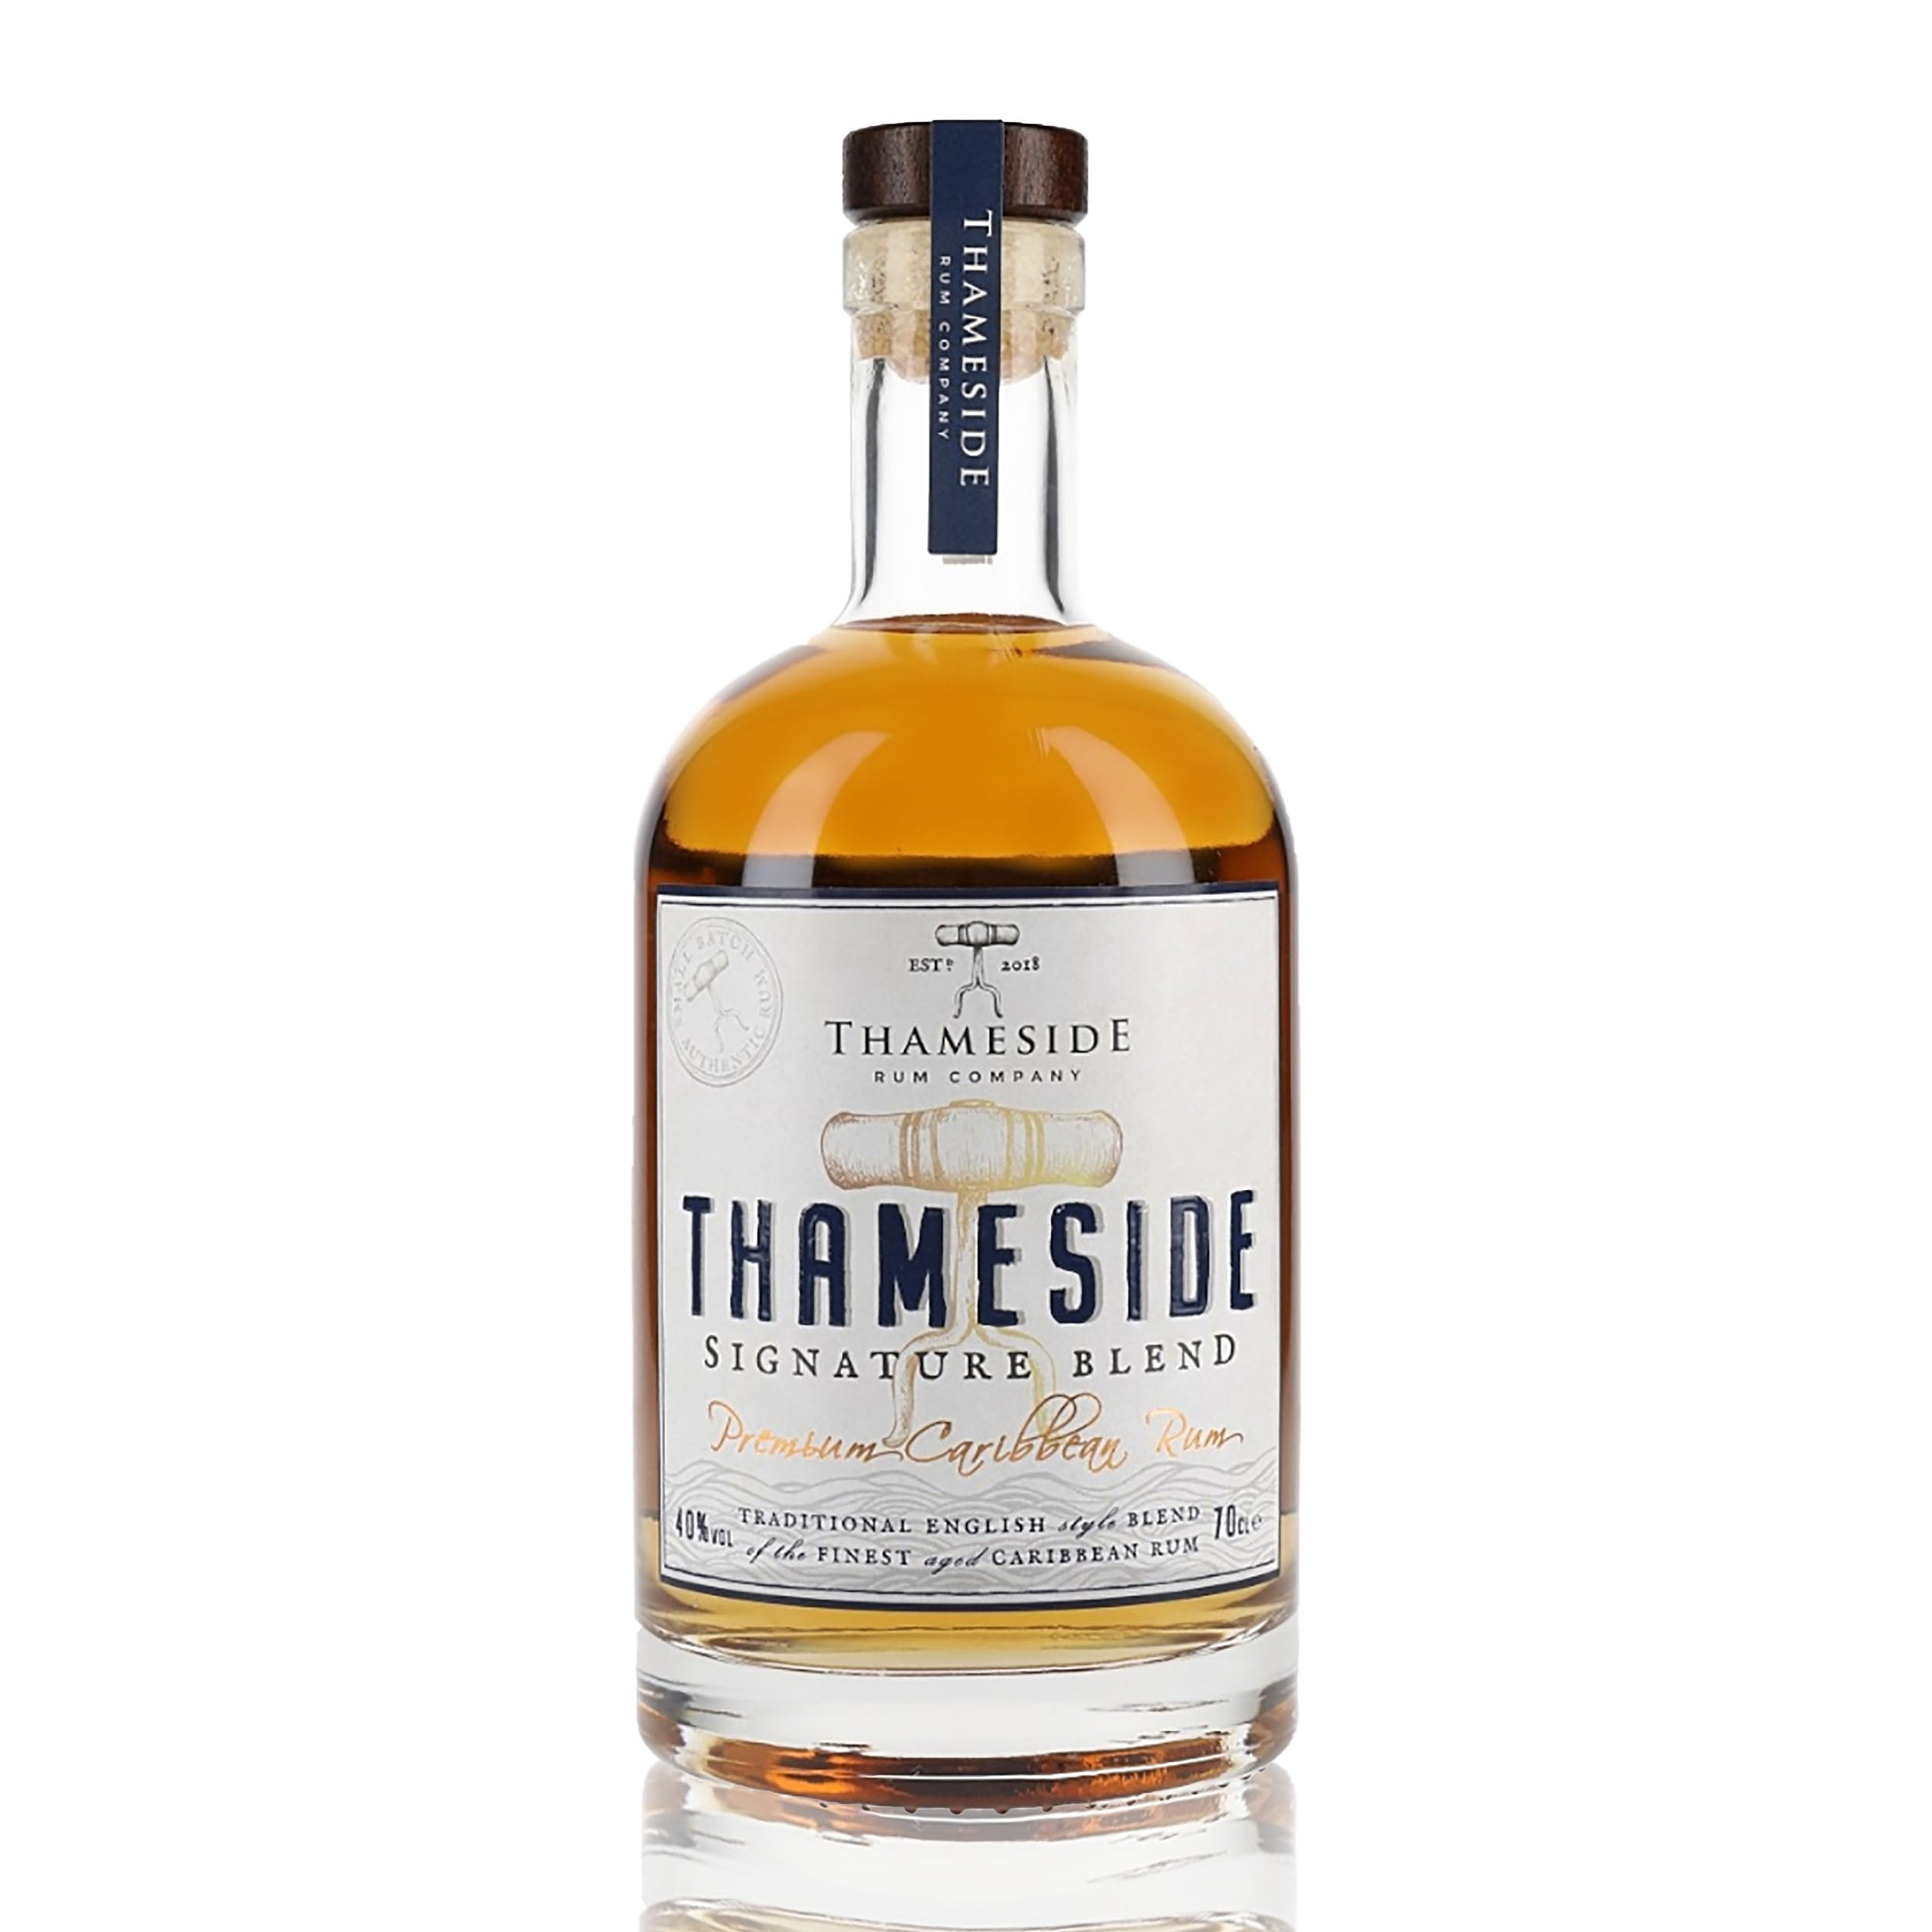 Thameside Signature Blend Rum, 70cl